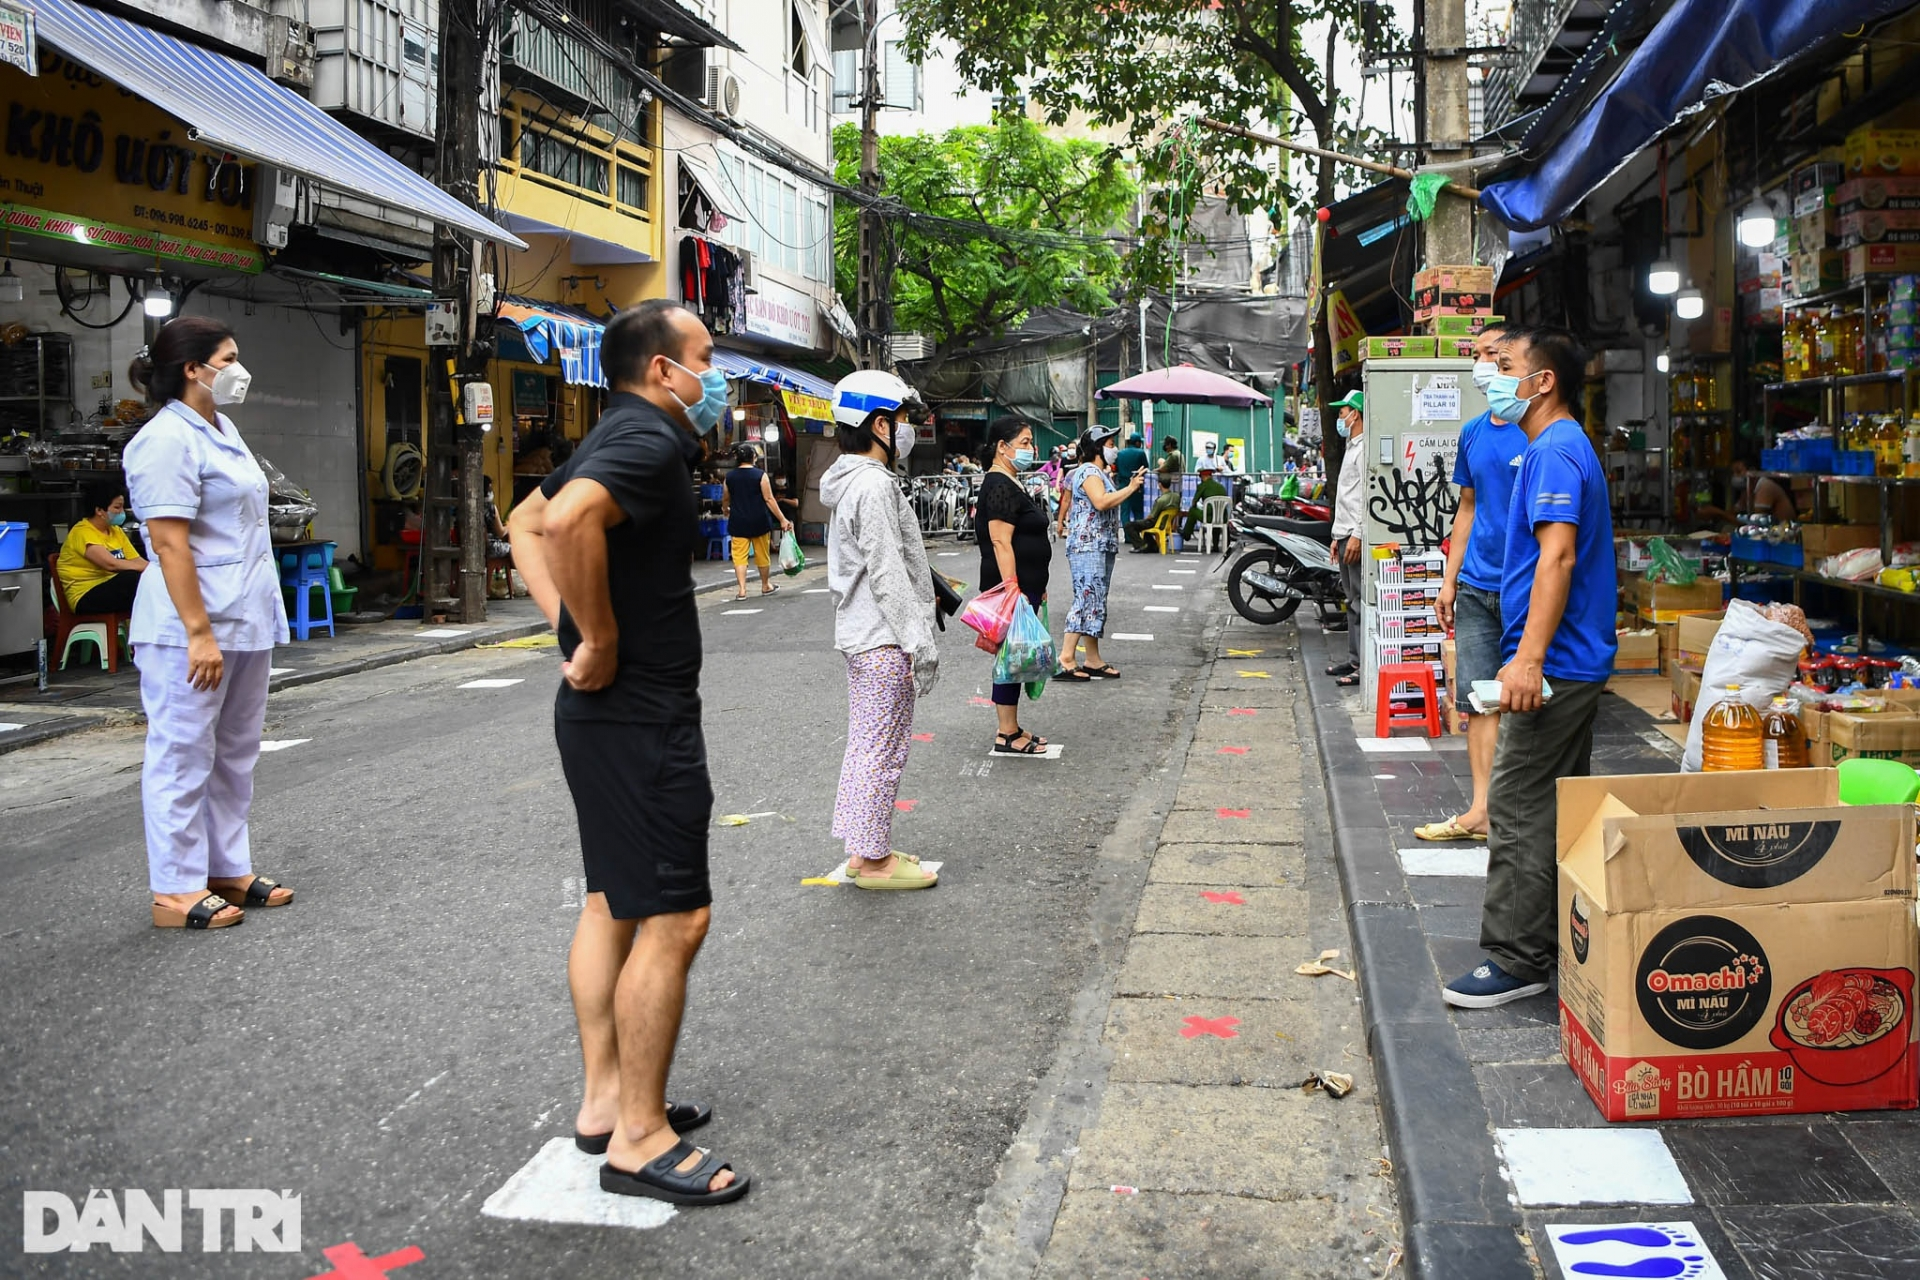 Hanoi Markets Use Creative Ideas to Protect People During Pandemic